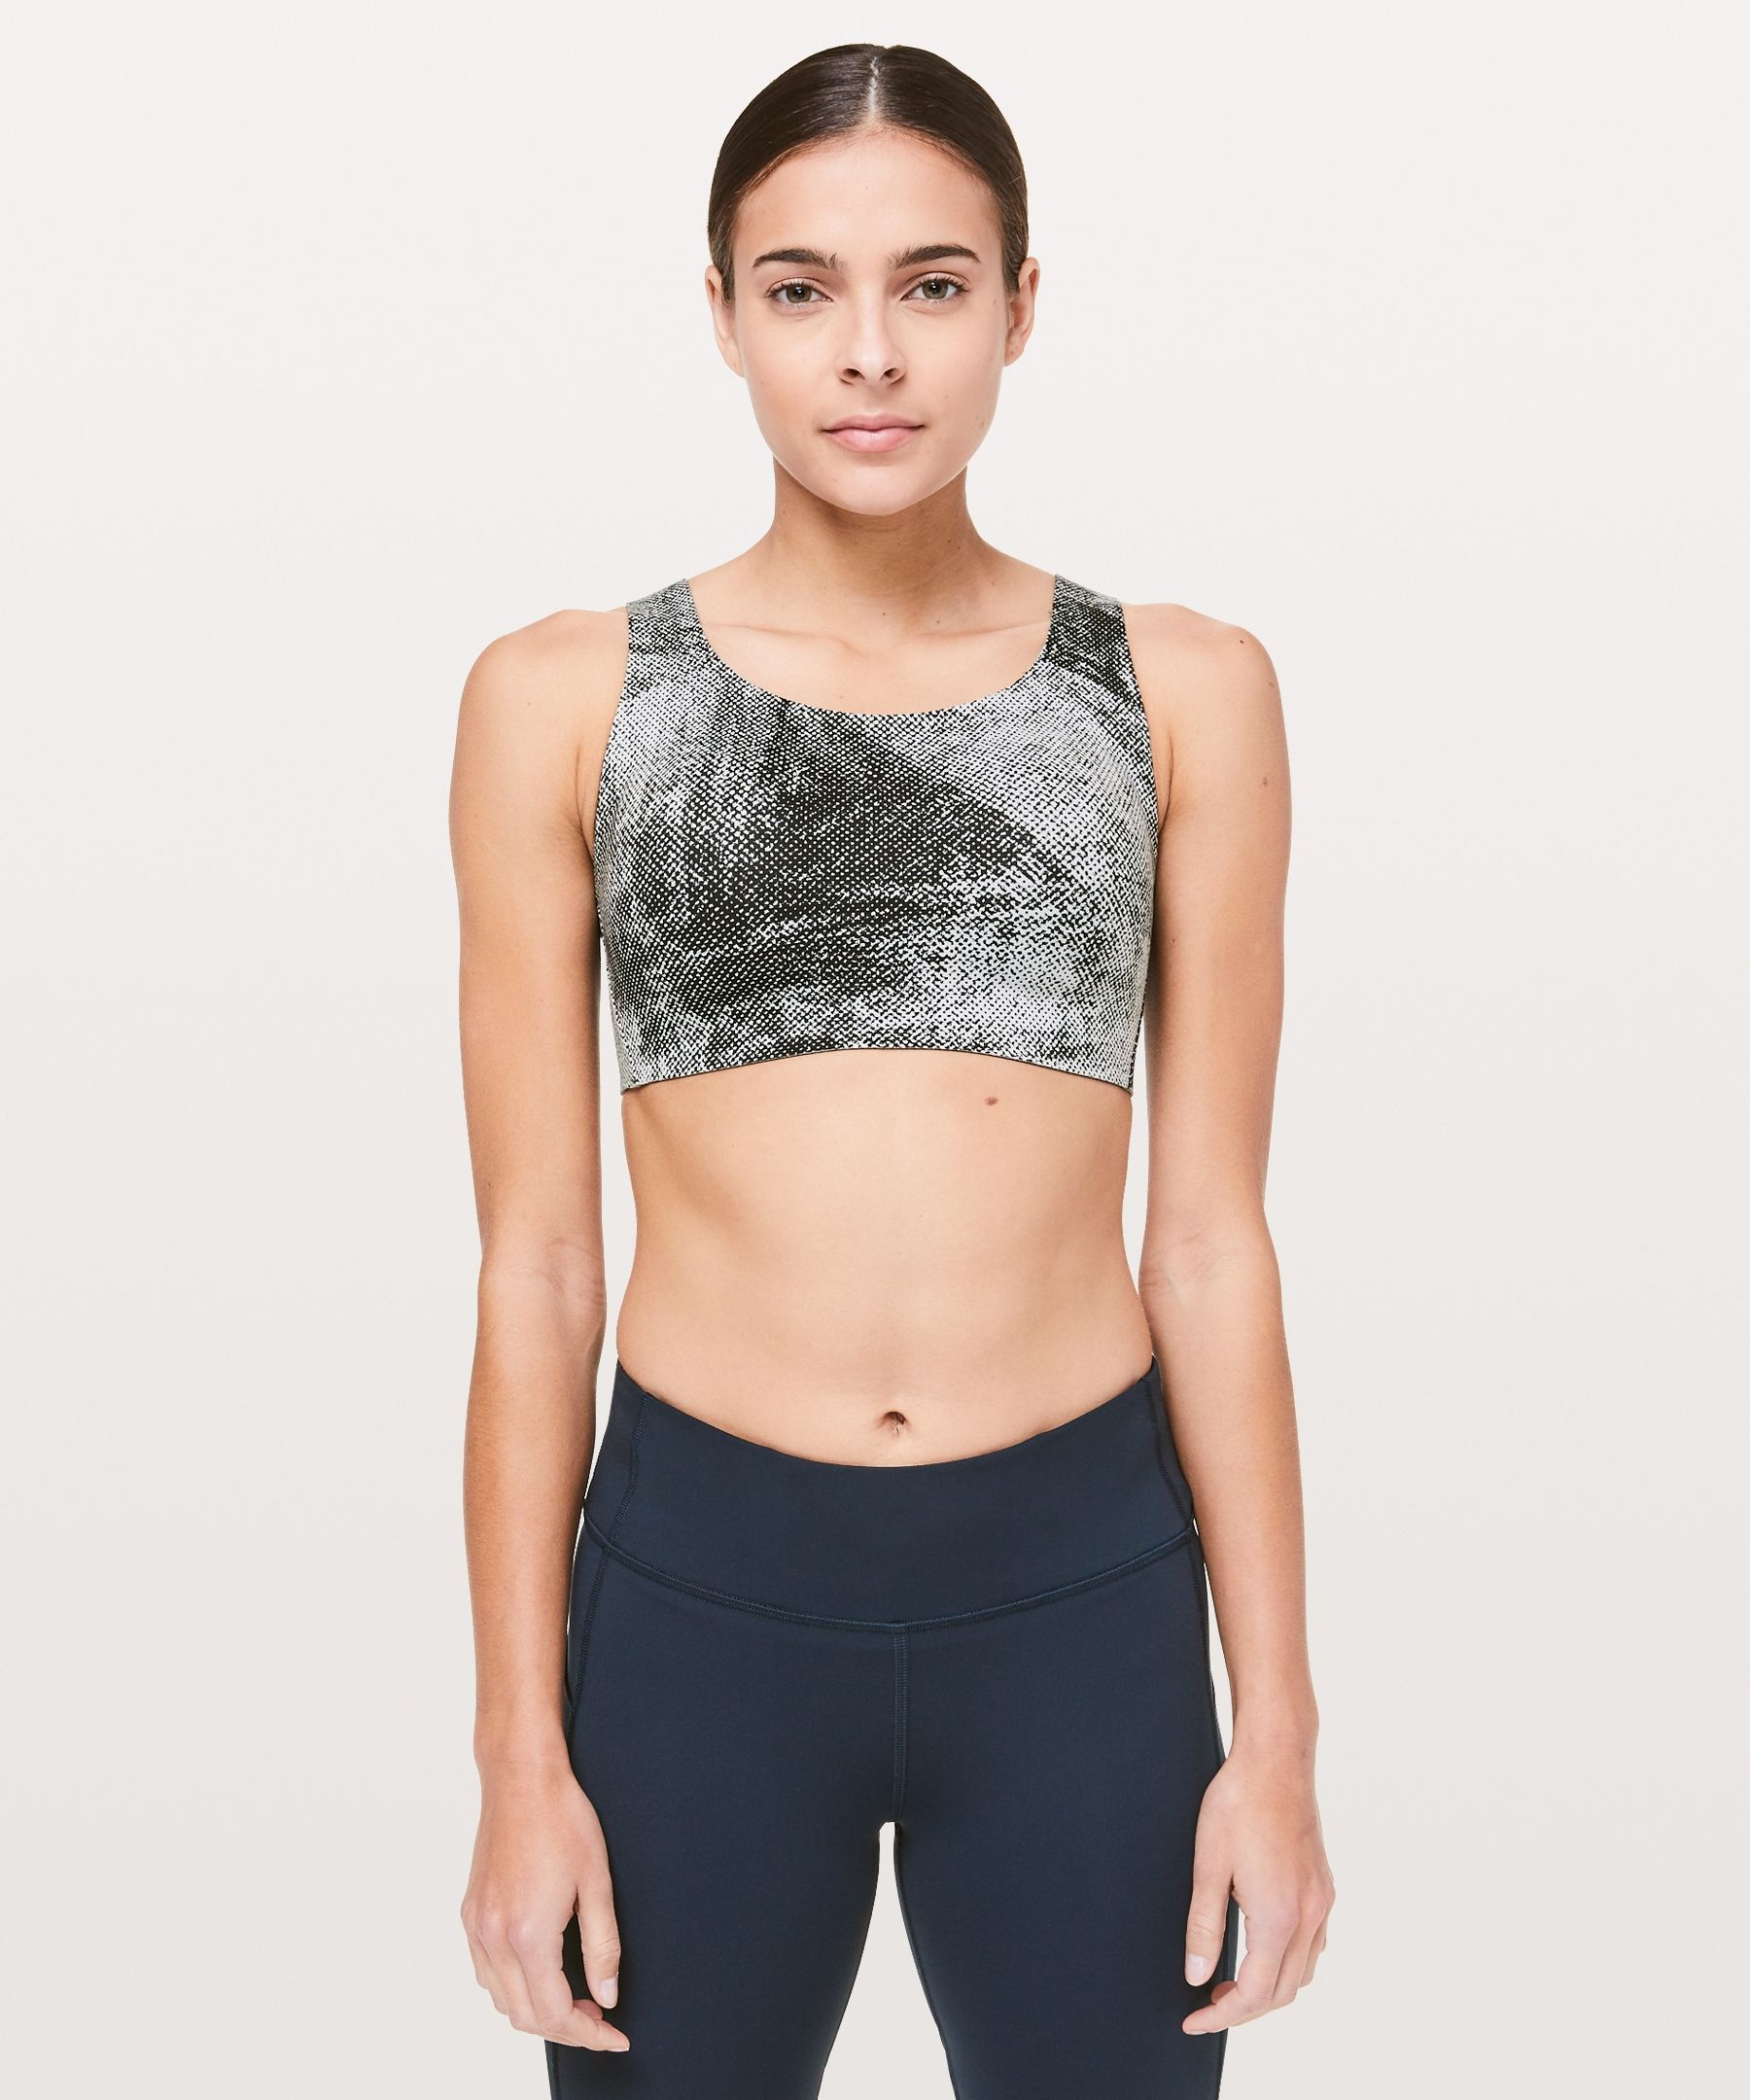 f7a5f27496e937 The best sports bras for running 2019